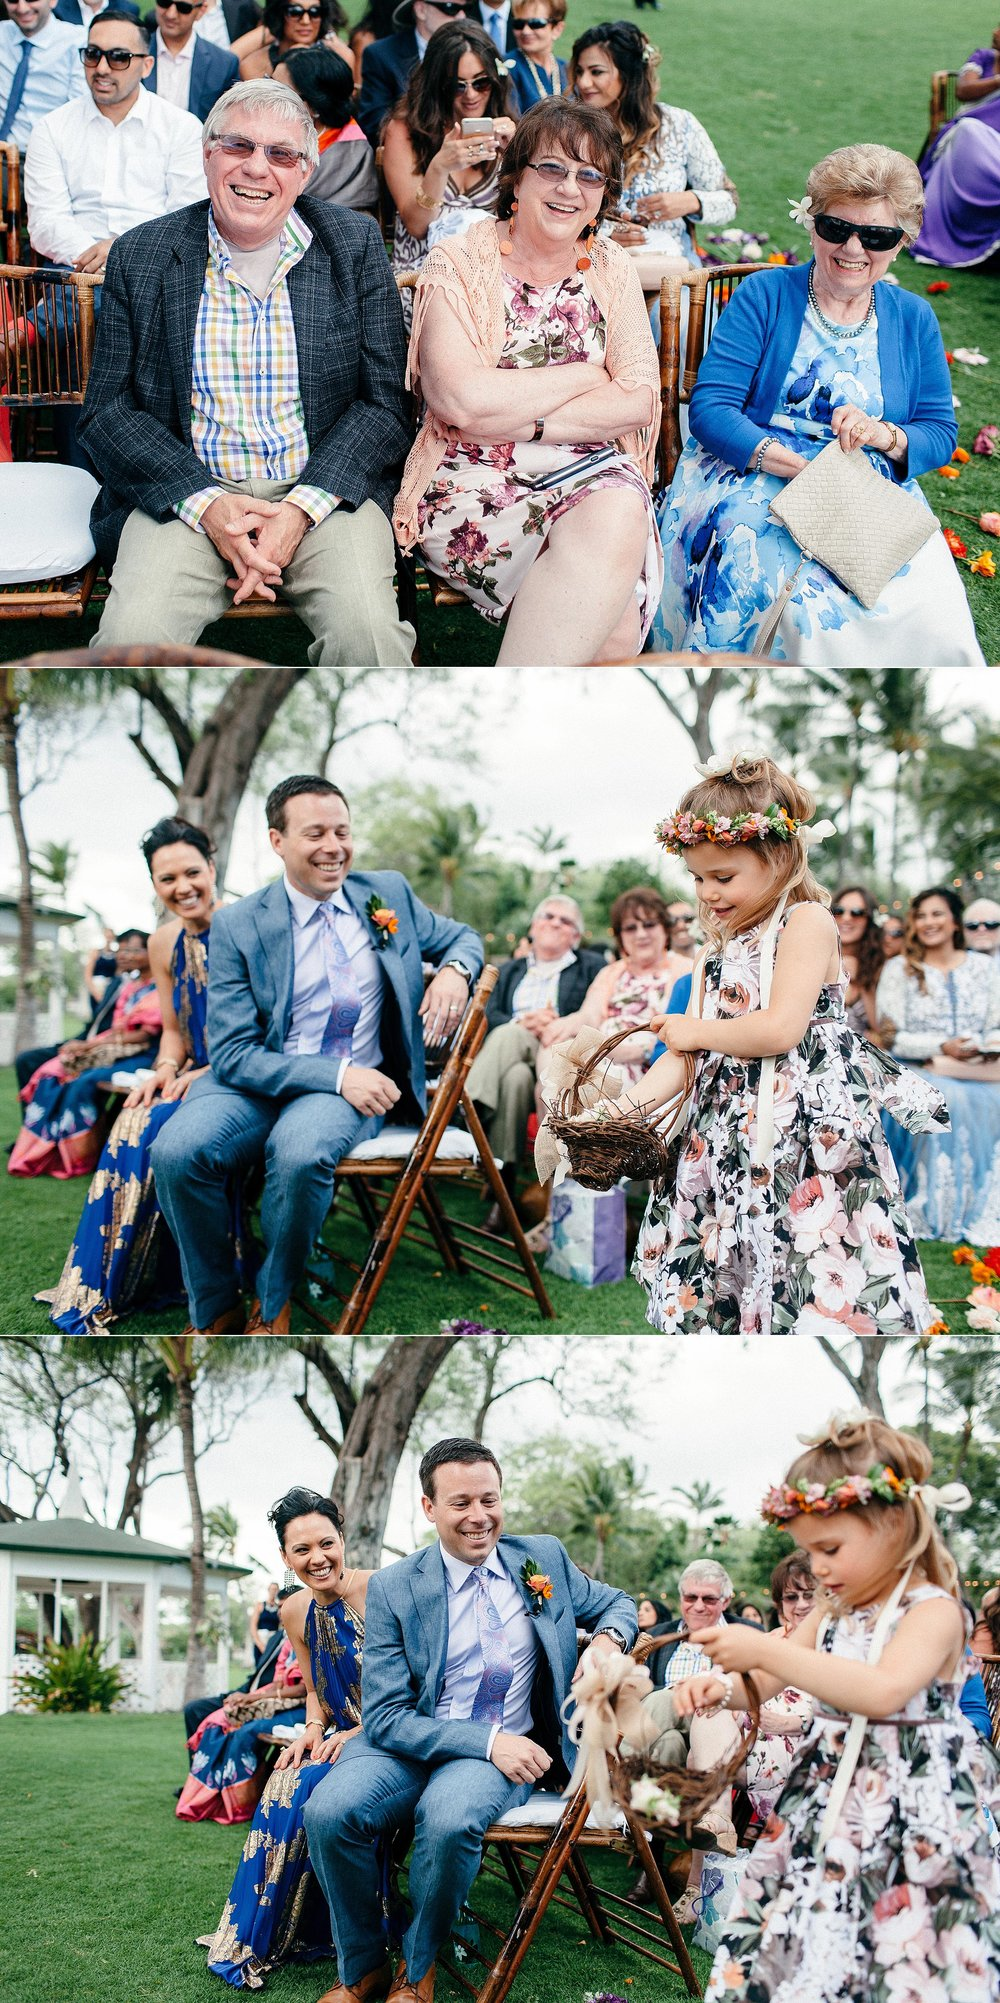 Maui-Hawaii-Indian-Wedding-at Sugarman-Estate-Floral-Dress-and-Colorful-Details_0018.jpg